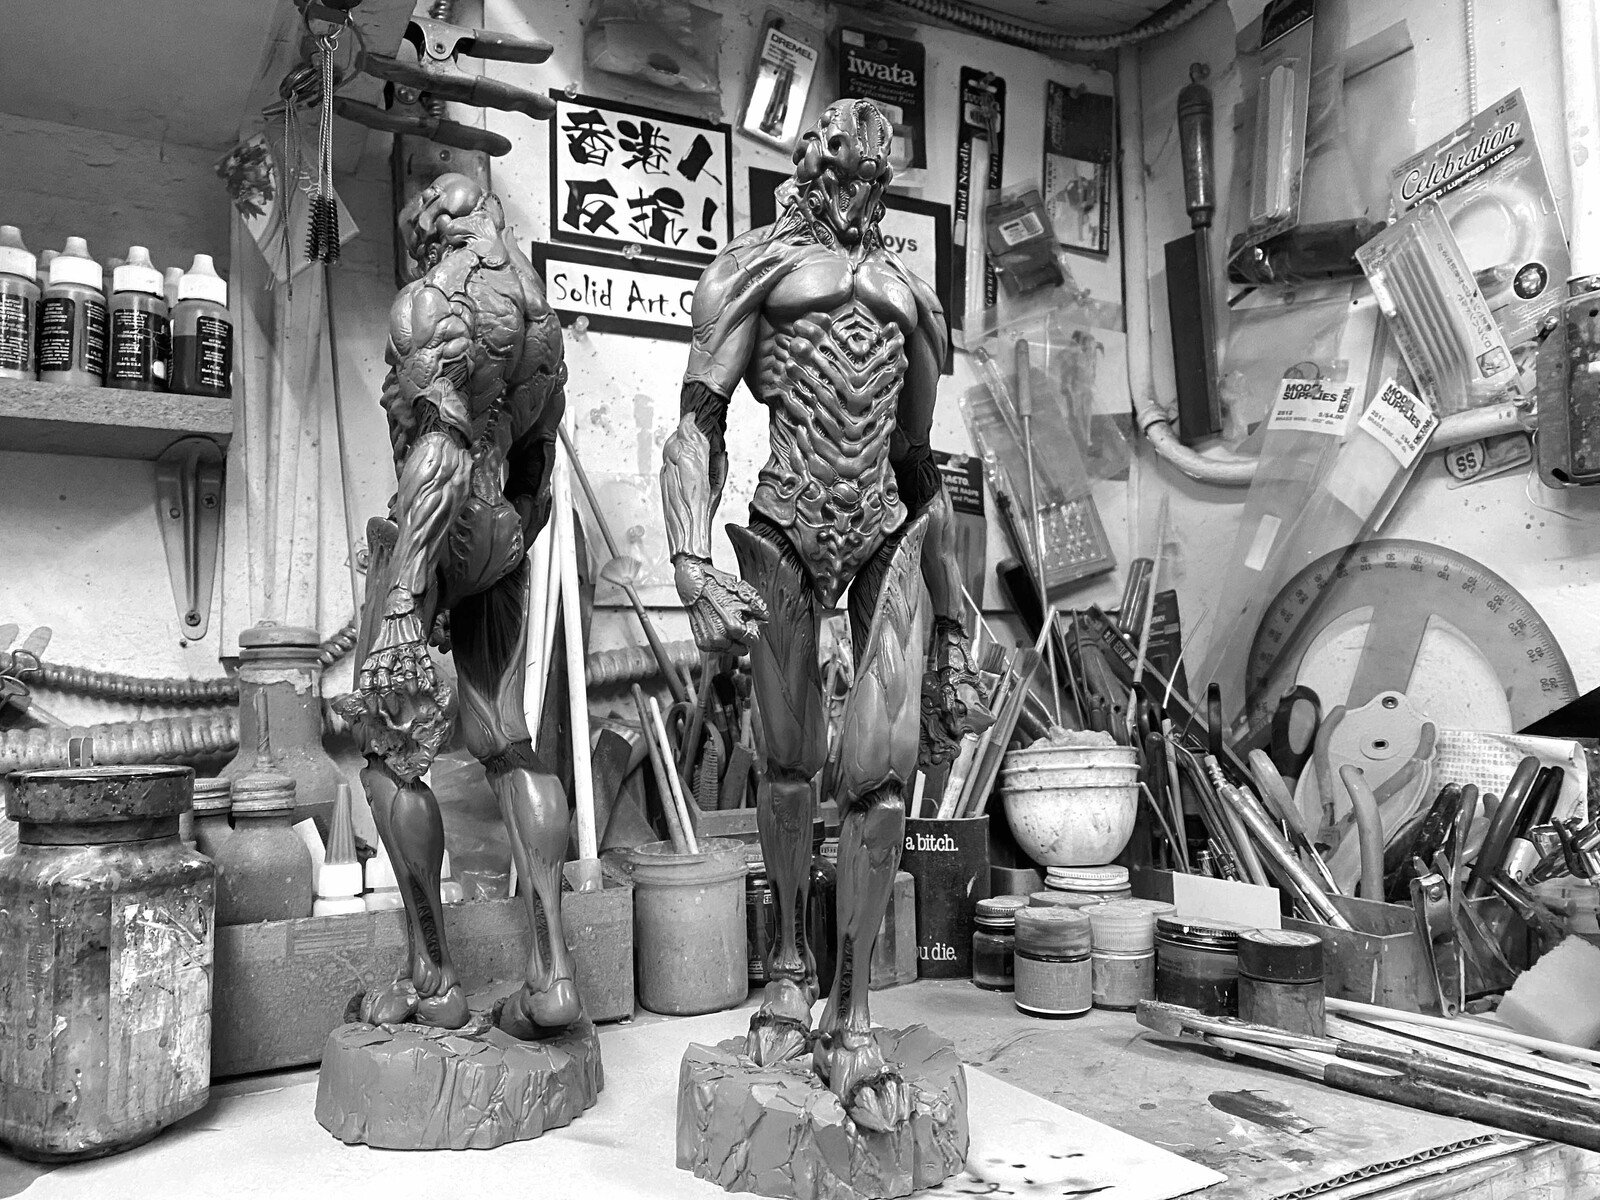 Vile Guyver Art Statue 邪悪な強殖装甲ガイバー https://www.solidart.club/